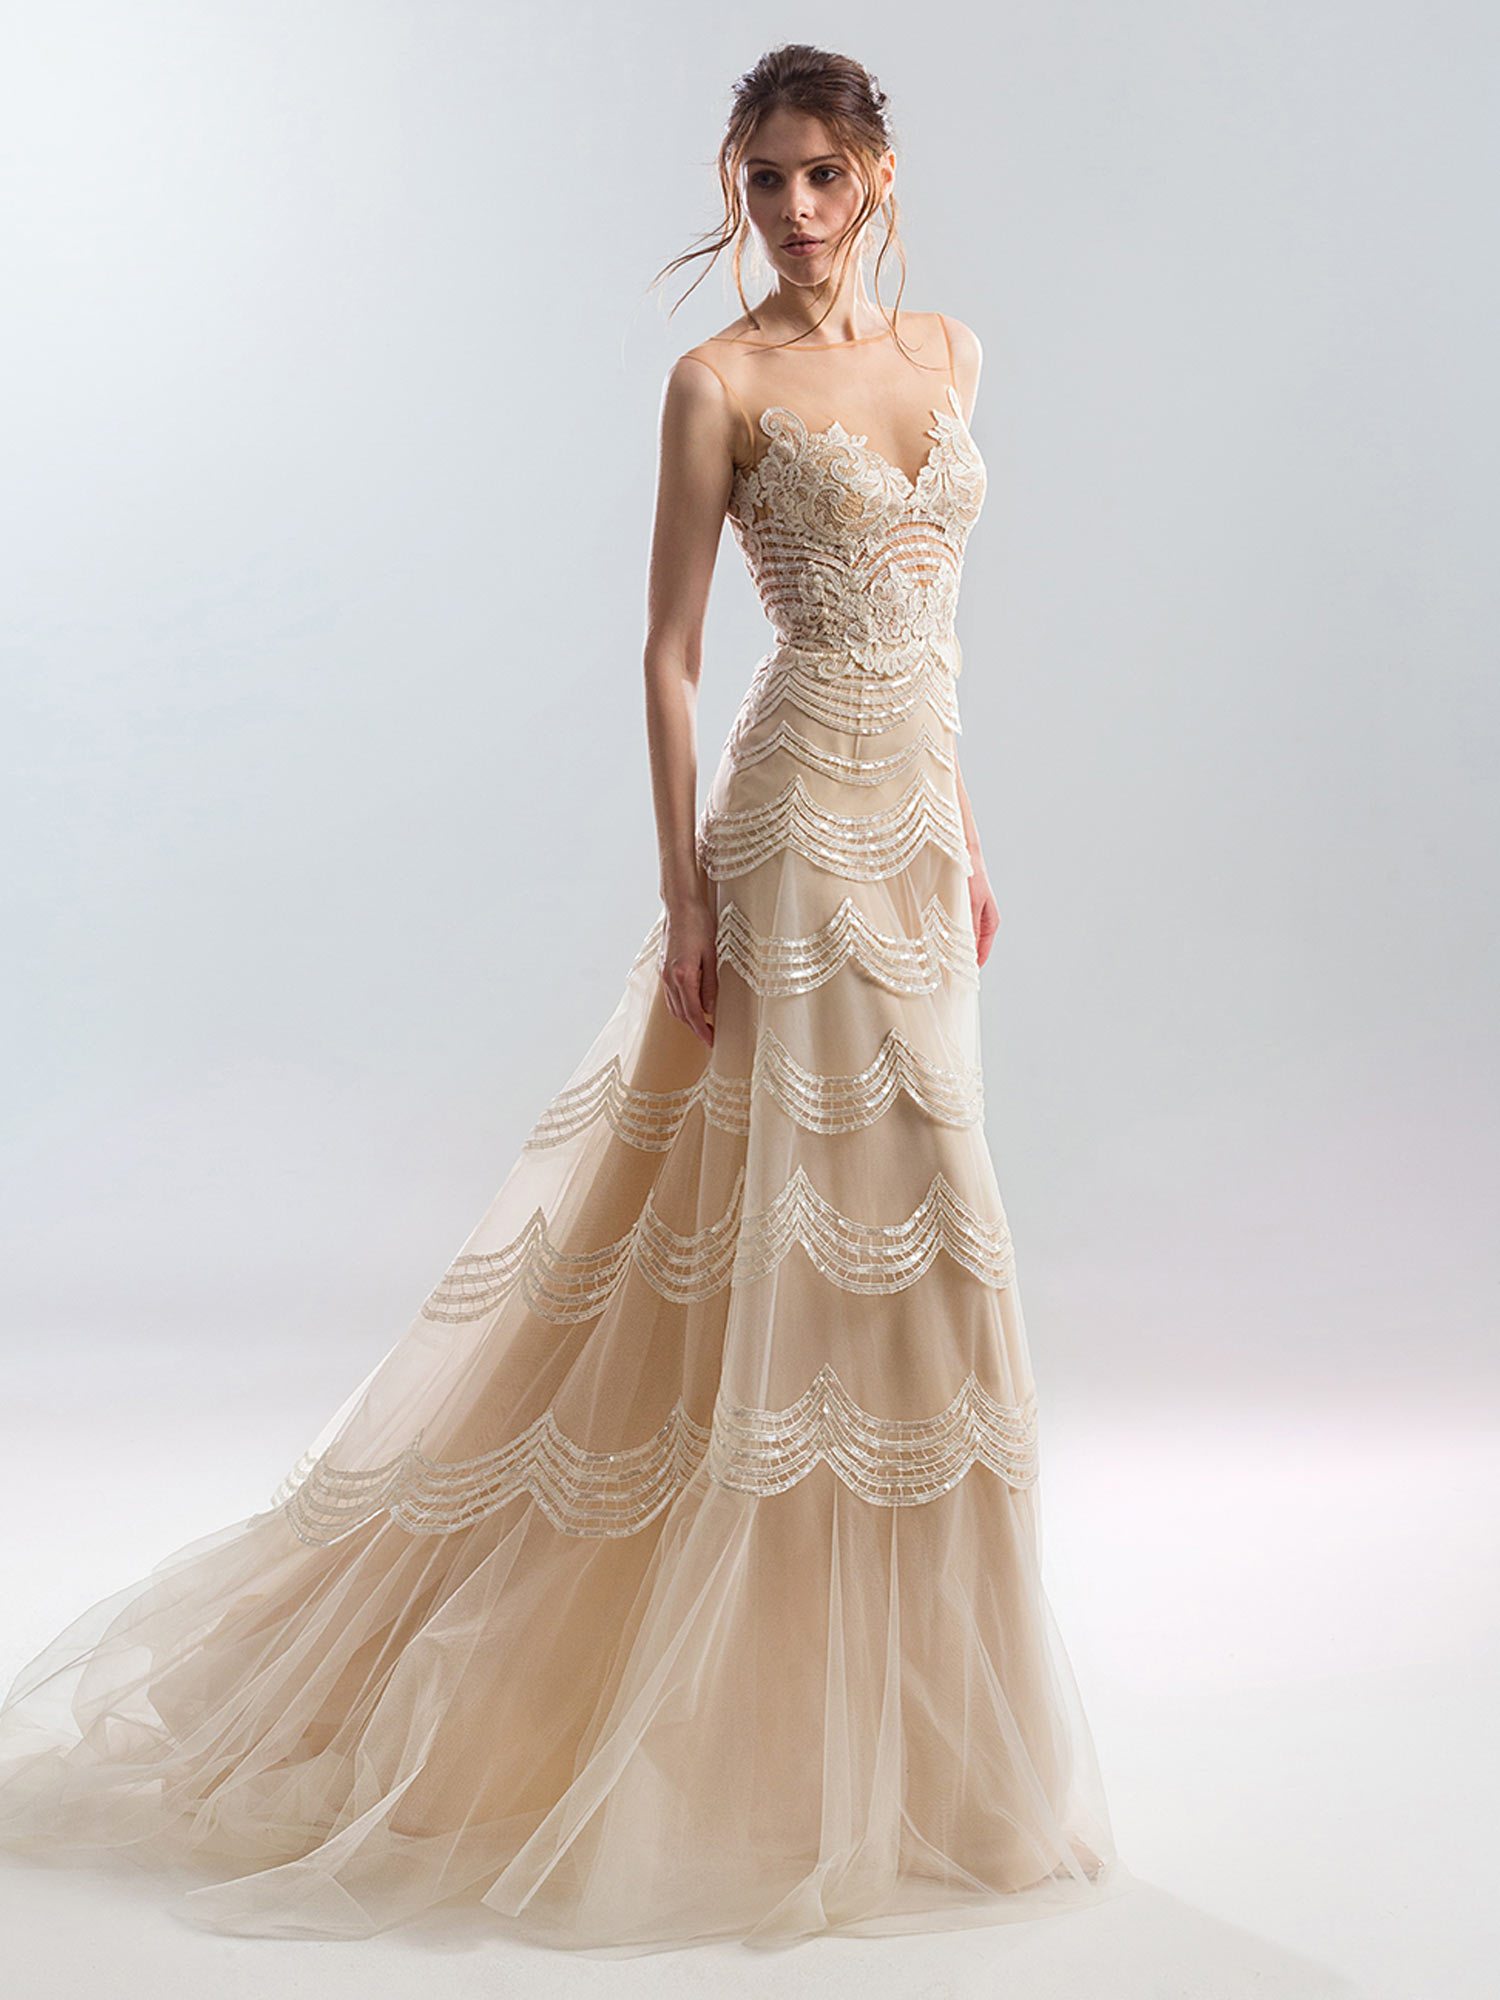 Sheath wedding dress with illusion neckline and scalloped embroidery